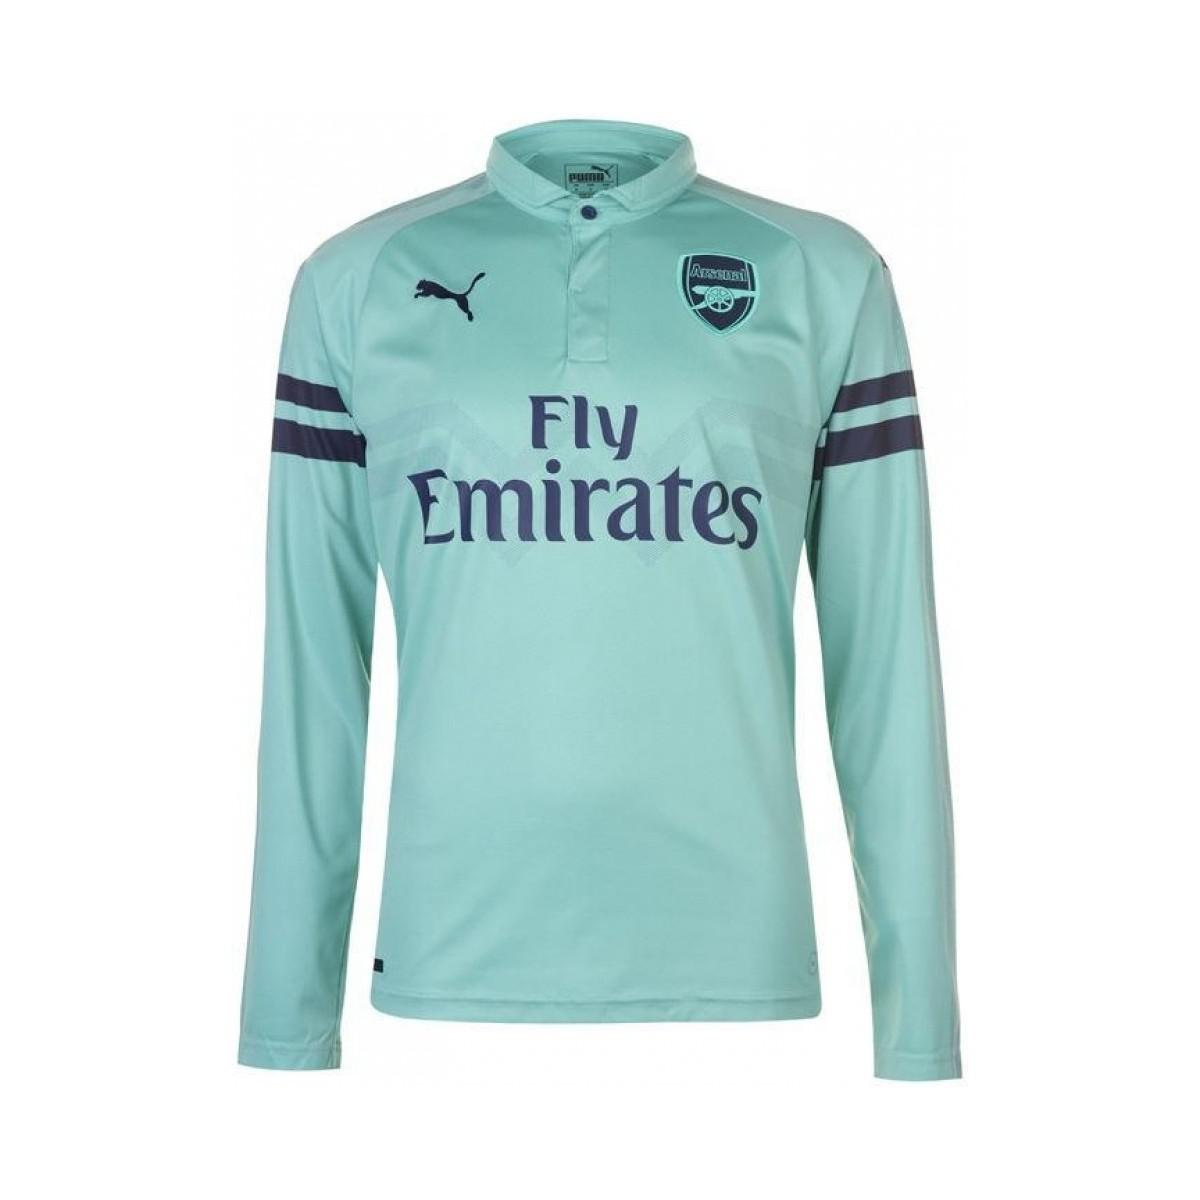 0c0dad21 PUMA - 2018-2019 Arsenal Third Long Sleeve Shirt (lacazette 9) Women's In